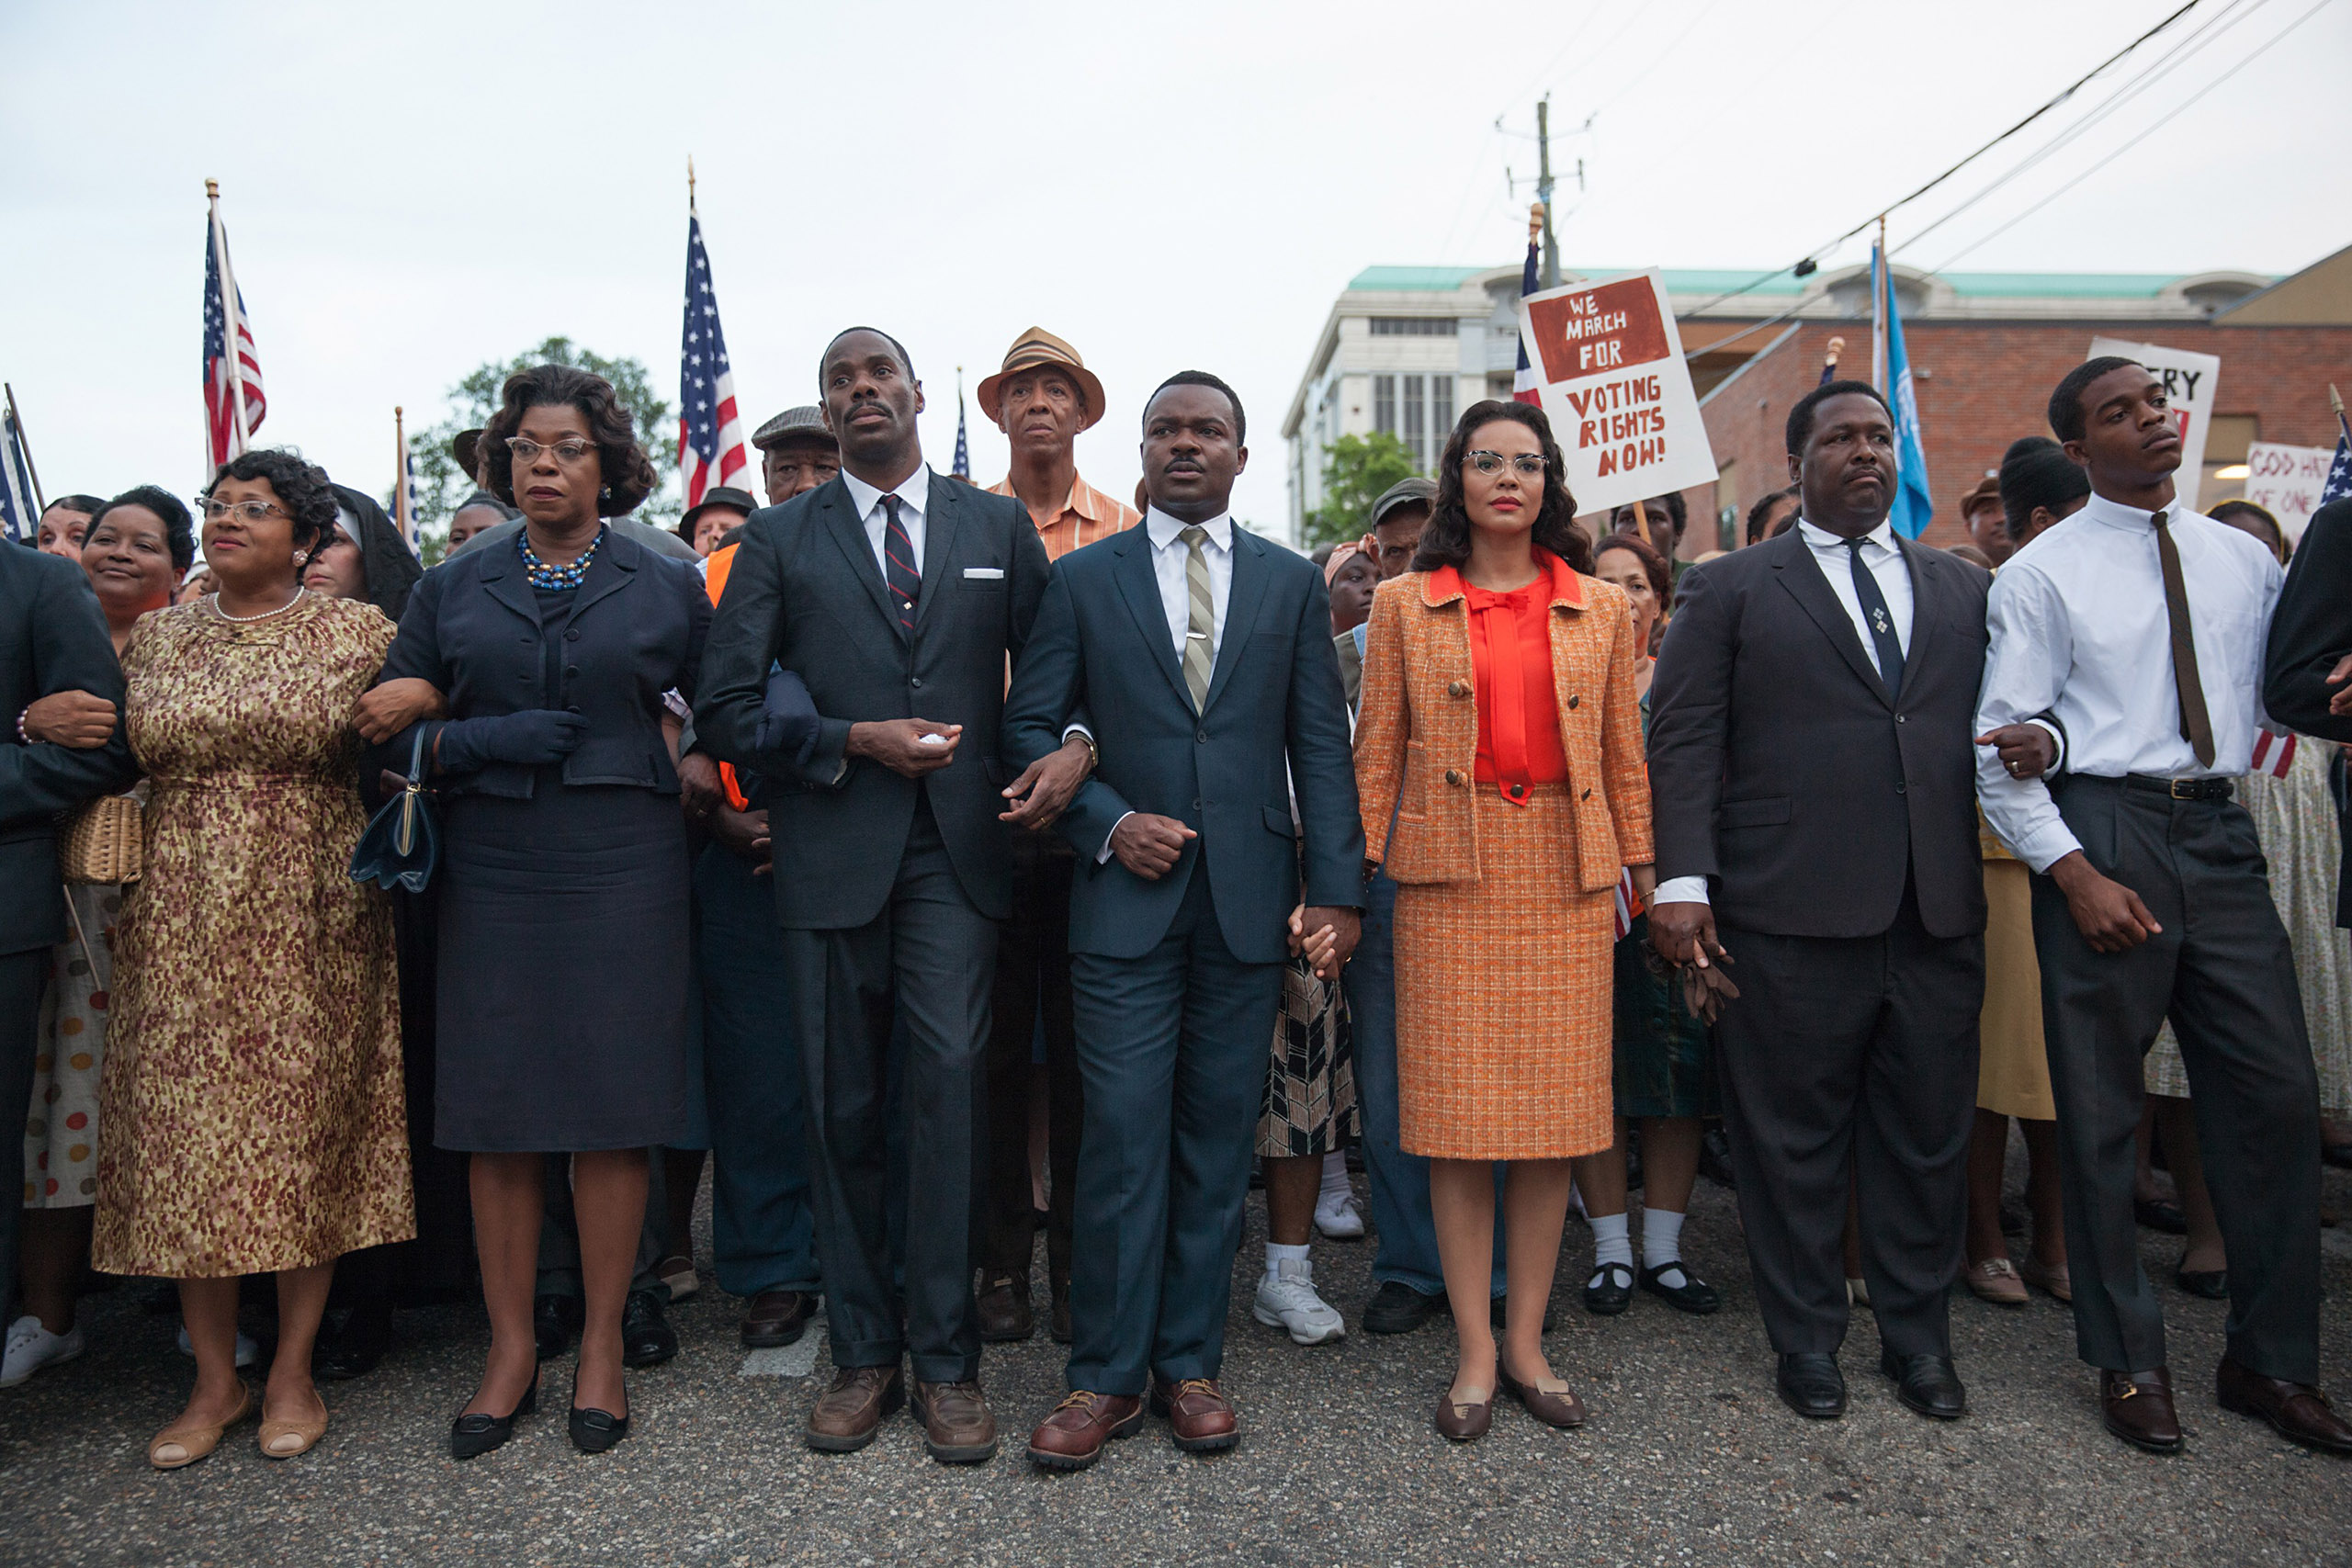 From the set of Selma.